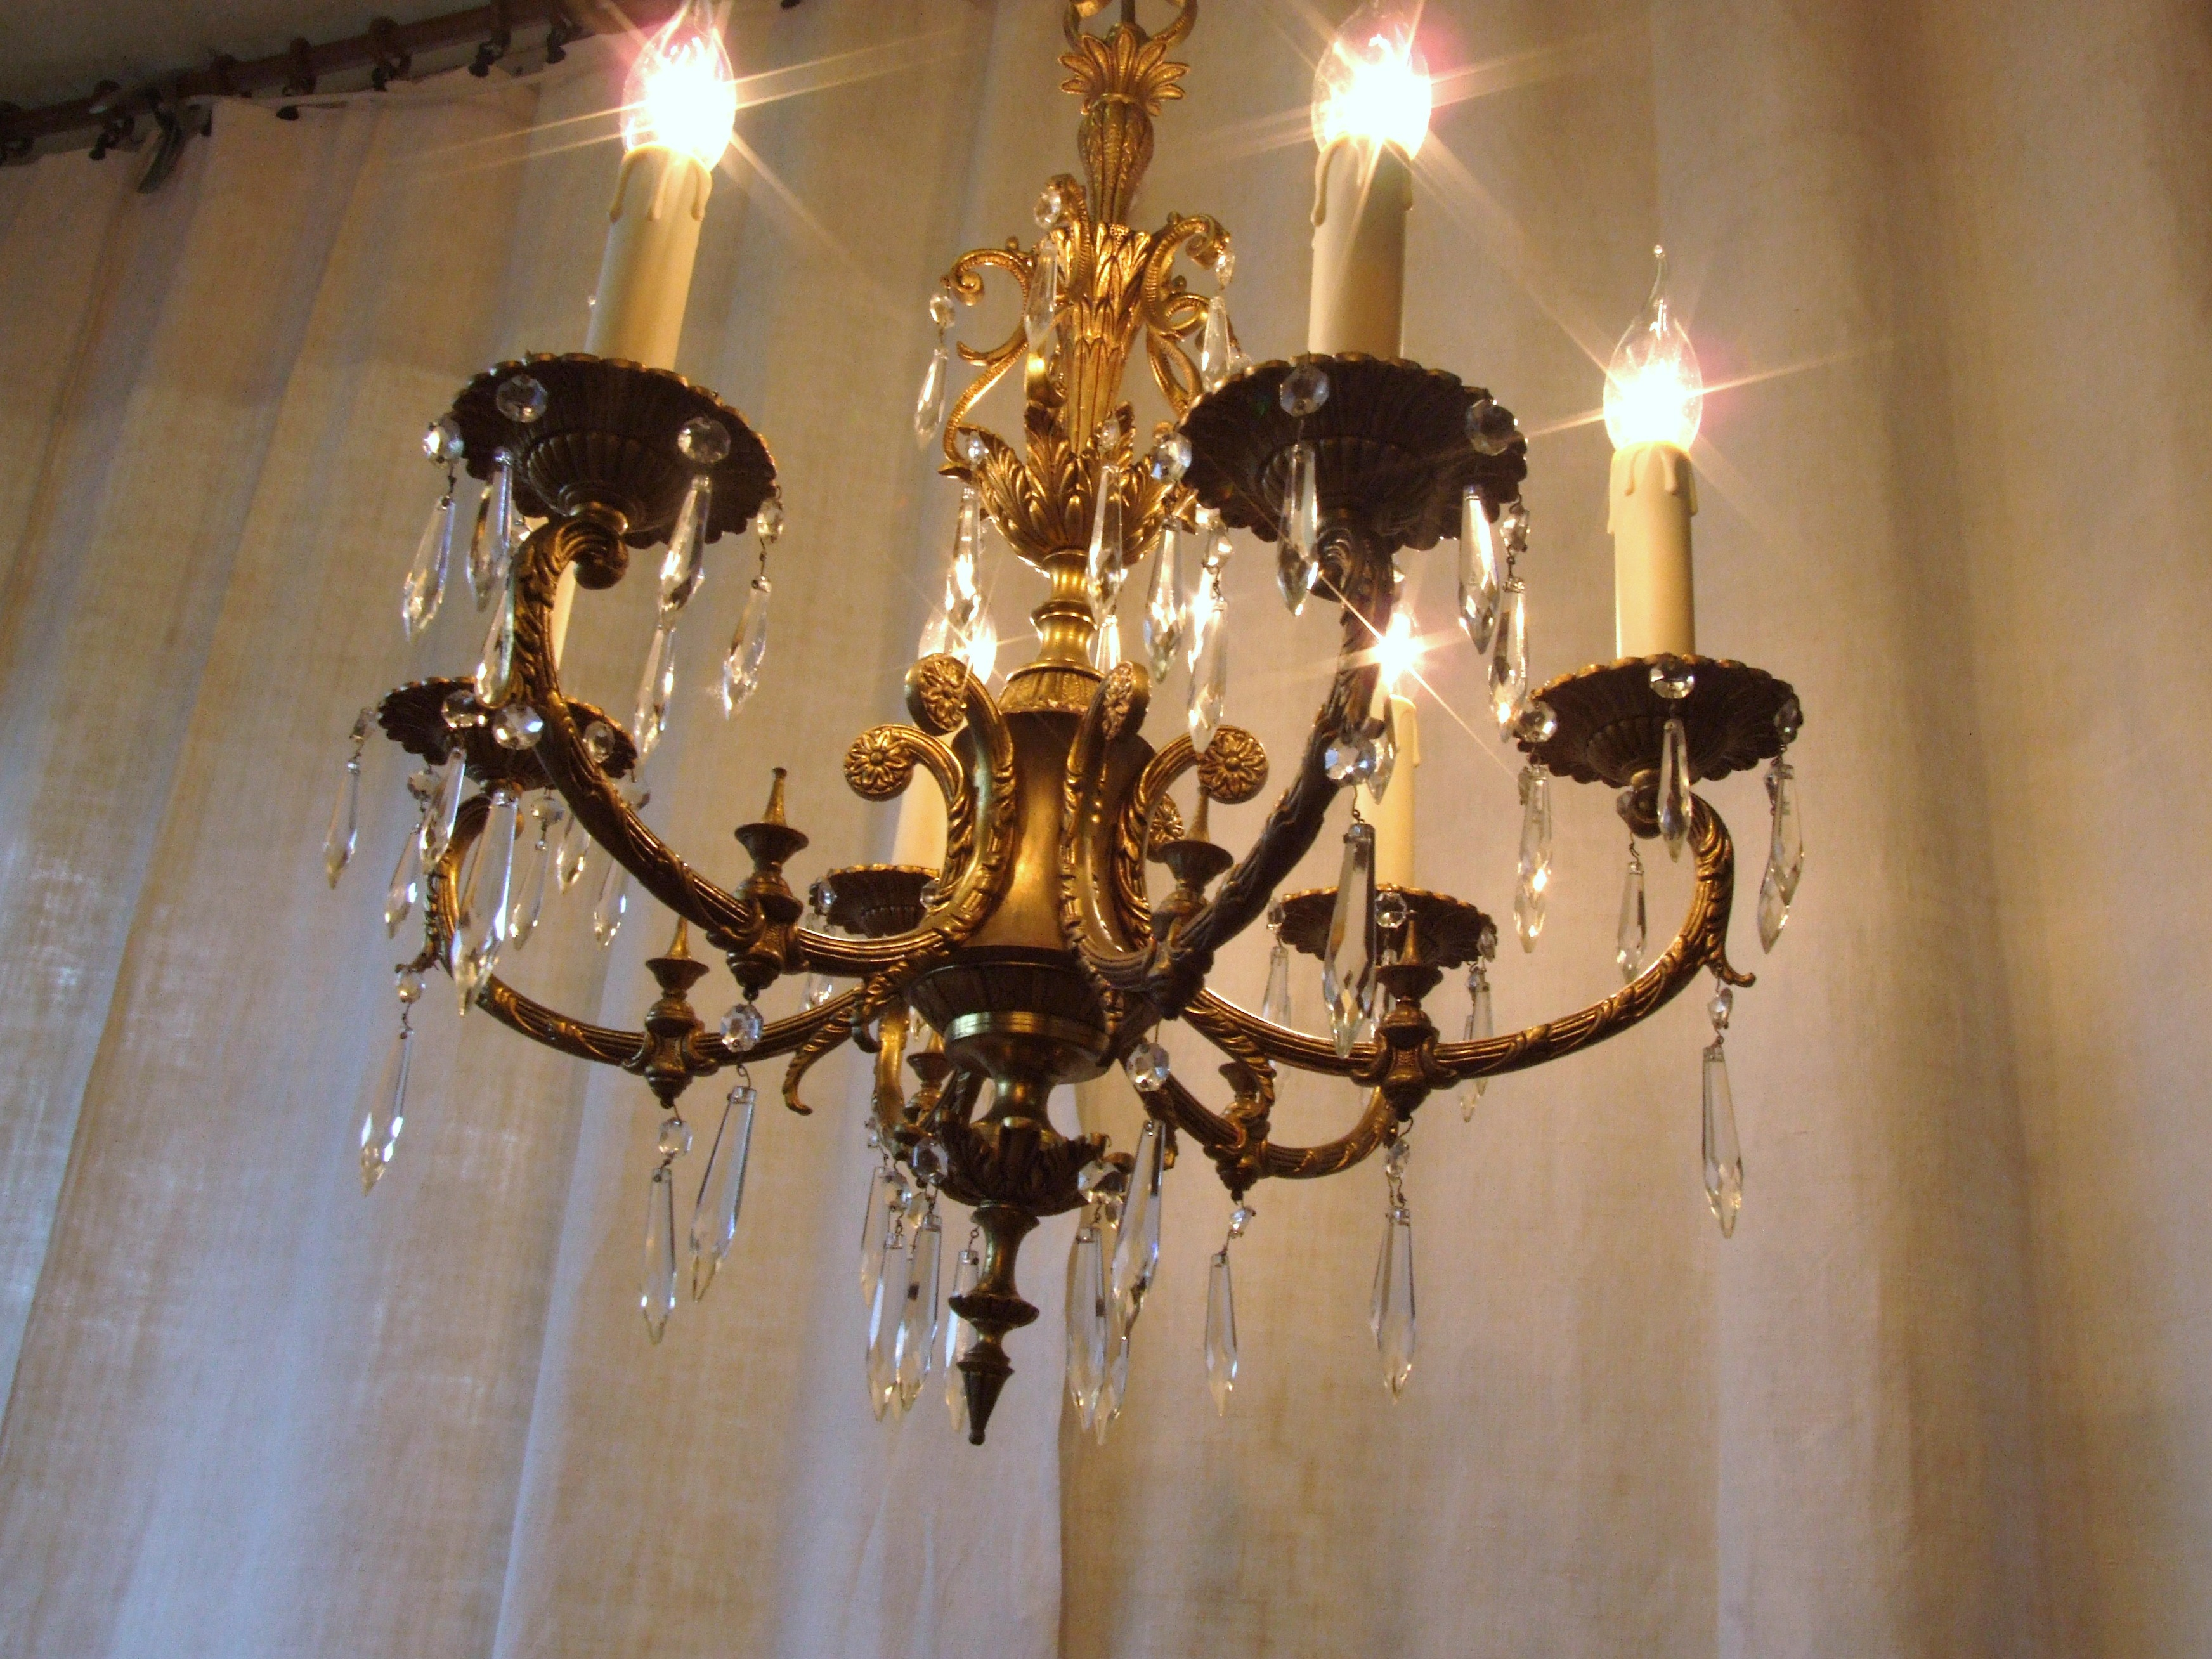 L158s Exquisite Vintage Italian 6 Arm Gilded Brass And Crystal Intended For Vintage Italian Chandeliers (Image 9 of 15)